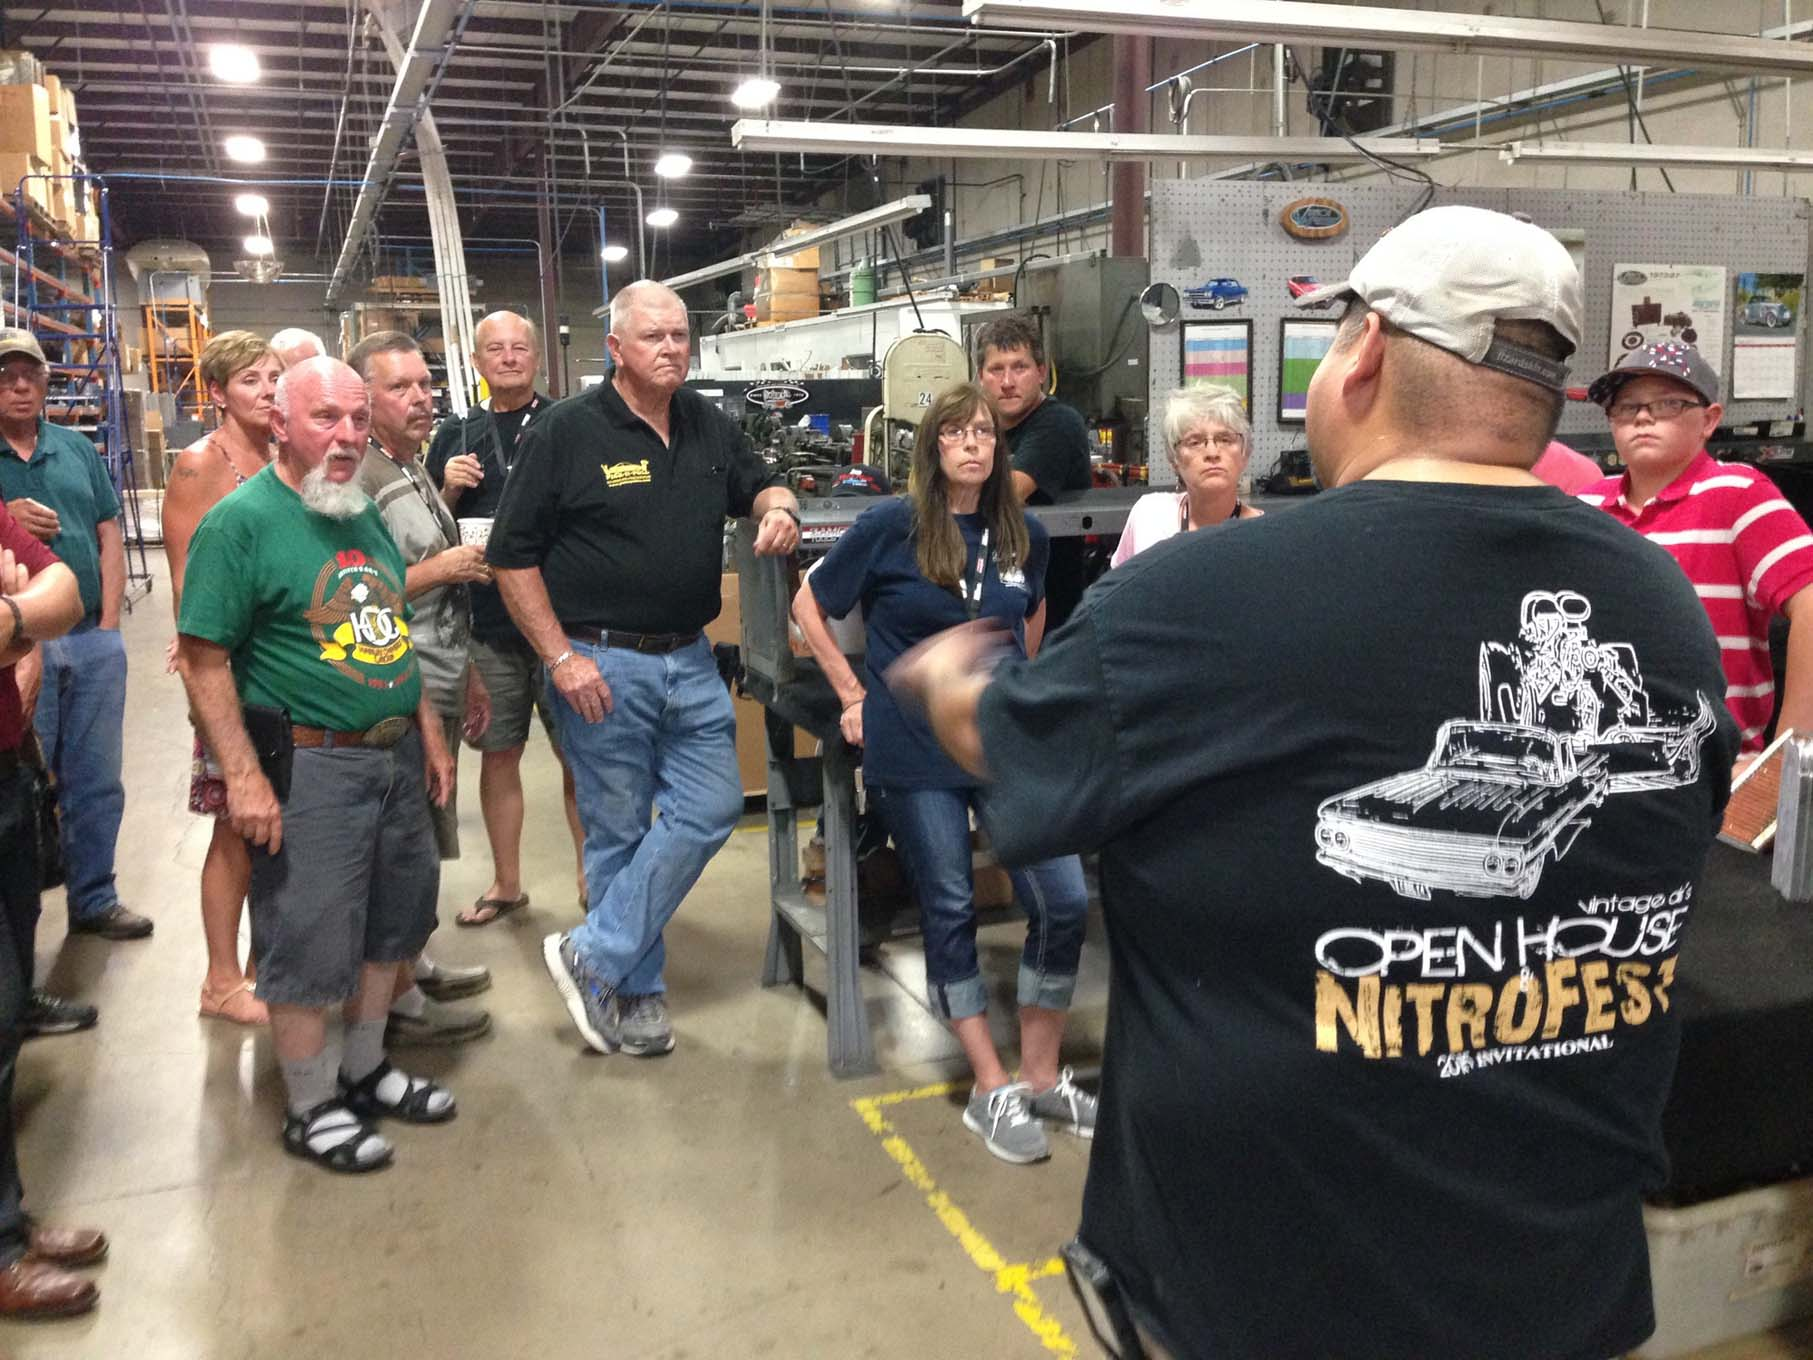 On Saturday evening all the tour participants got together at Vintage Air headquarters in San Antonio. The wiener roast is an annual tradition and then we got a look at the production facilities at Vintage Air.